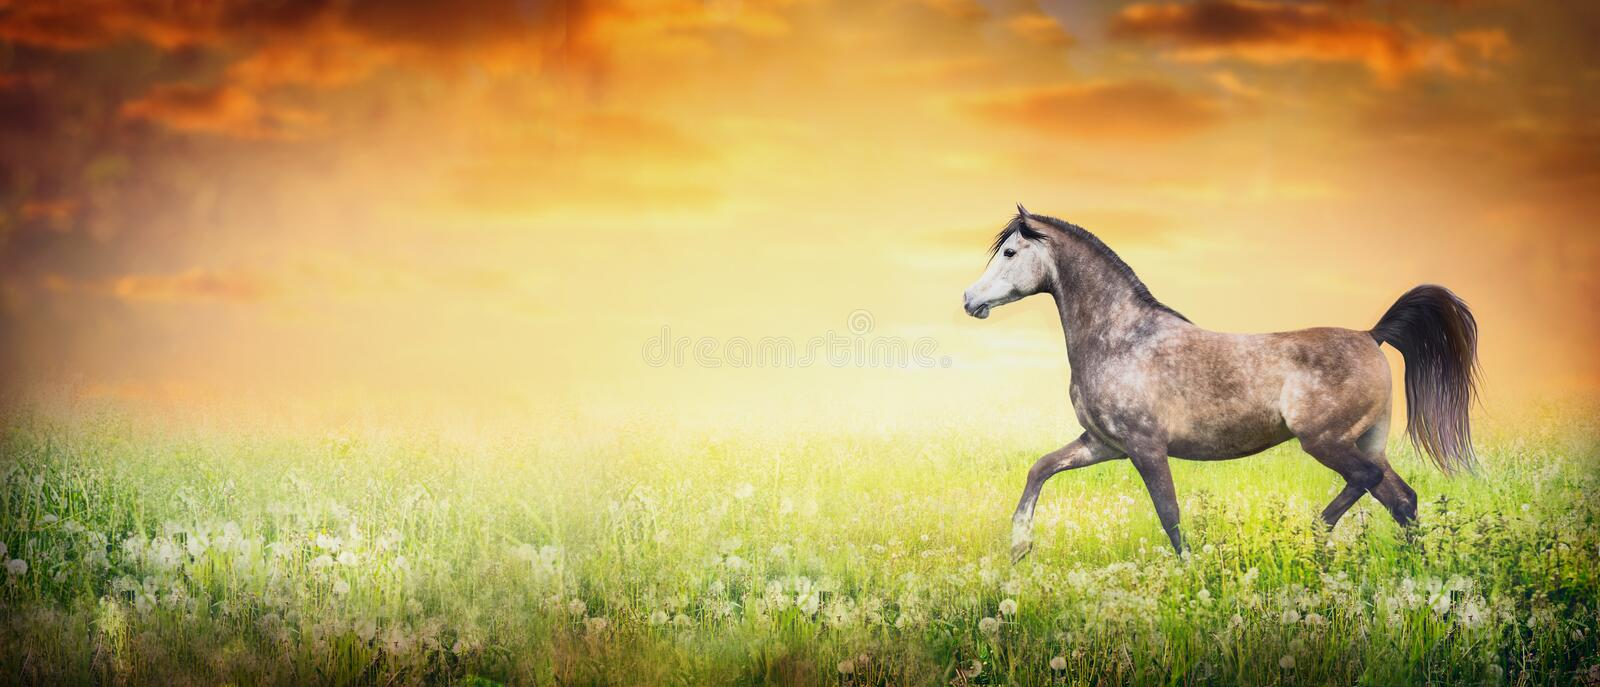 Beautiful arabian horse running trot on summer or autumn nature background with sunset sky, banner royalty free stock image